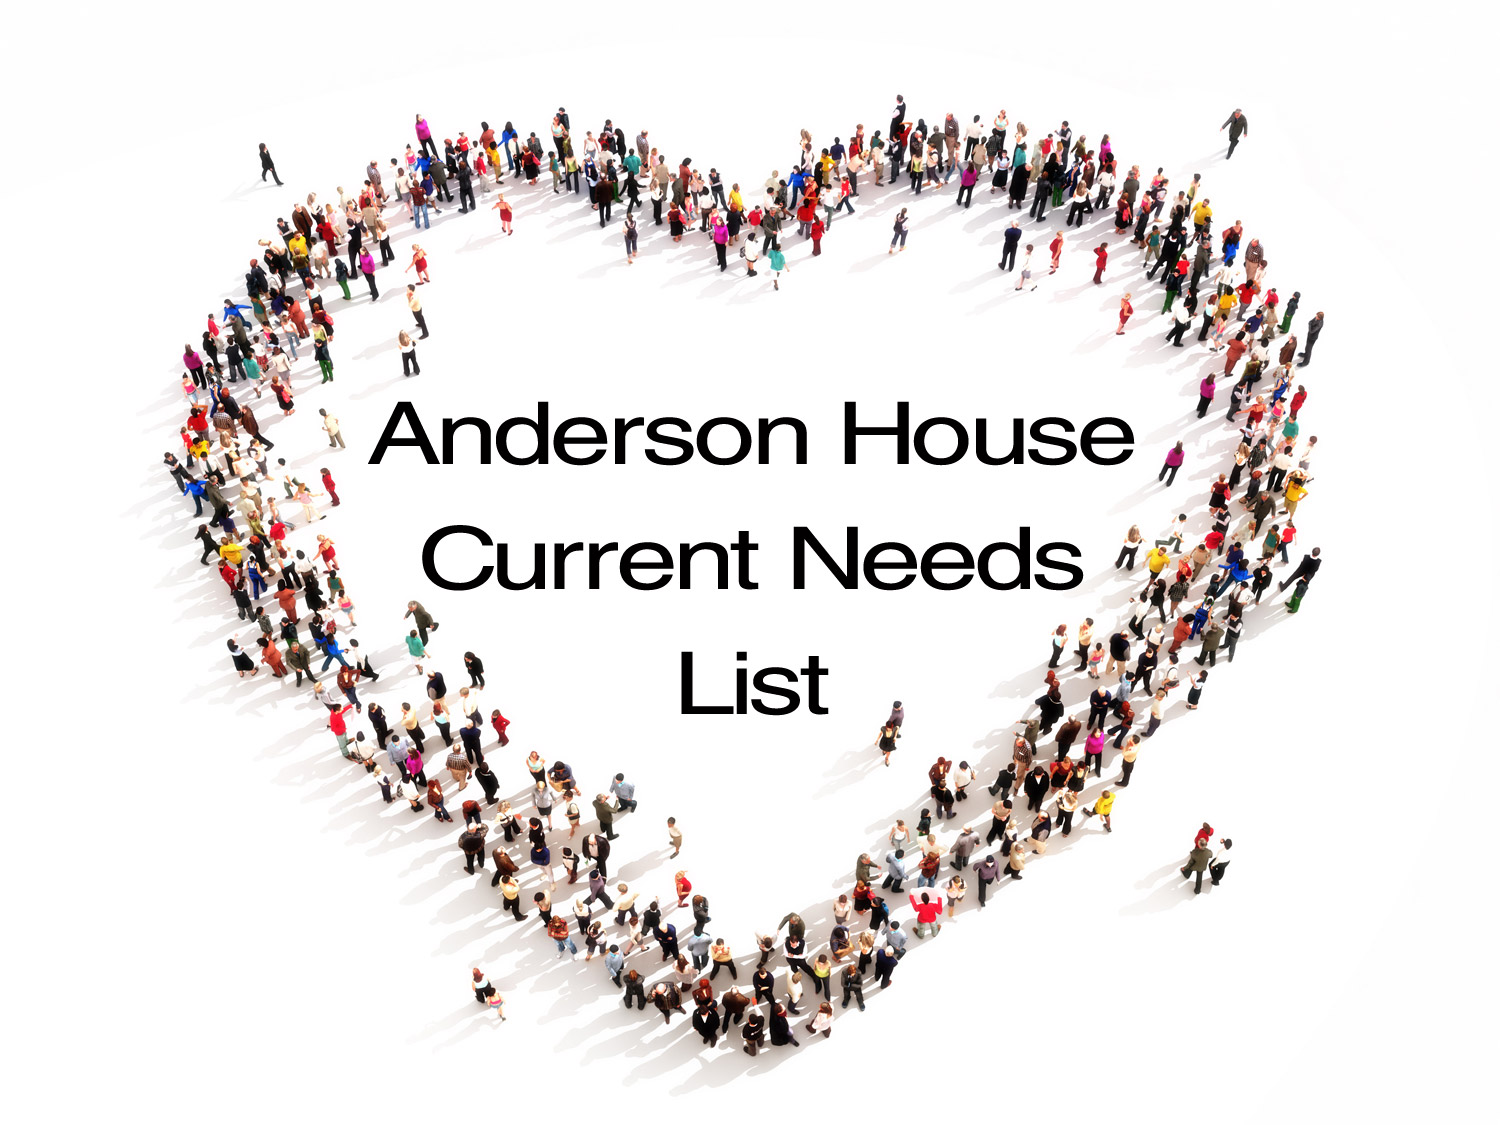 Anderson House: Current Needs List